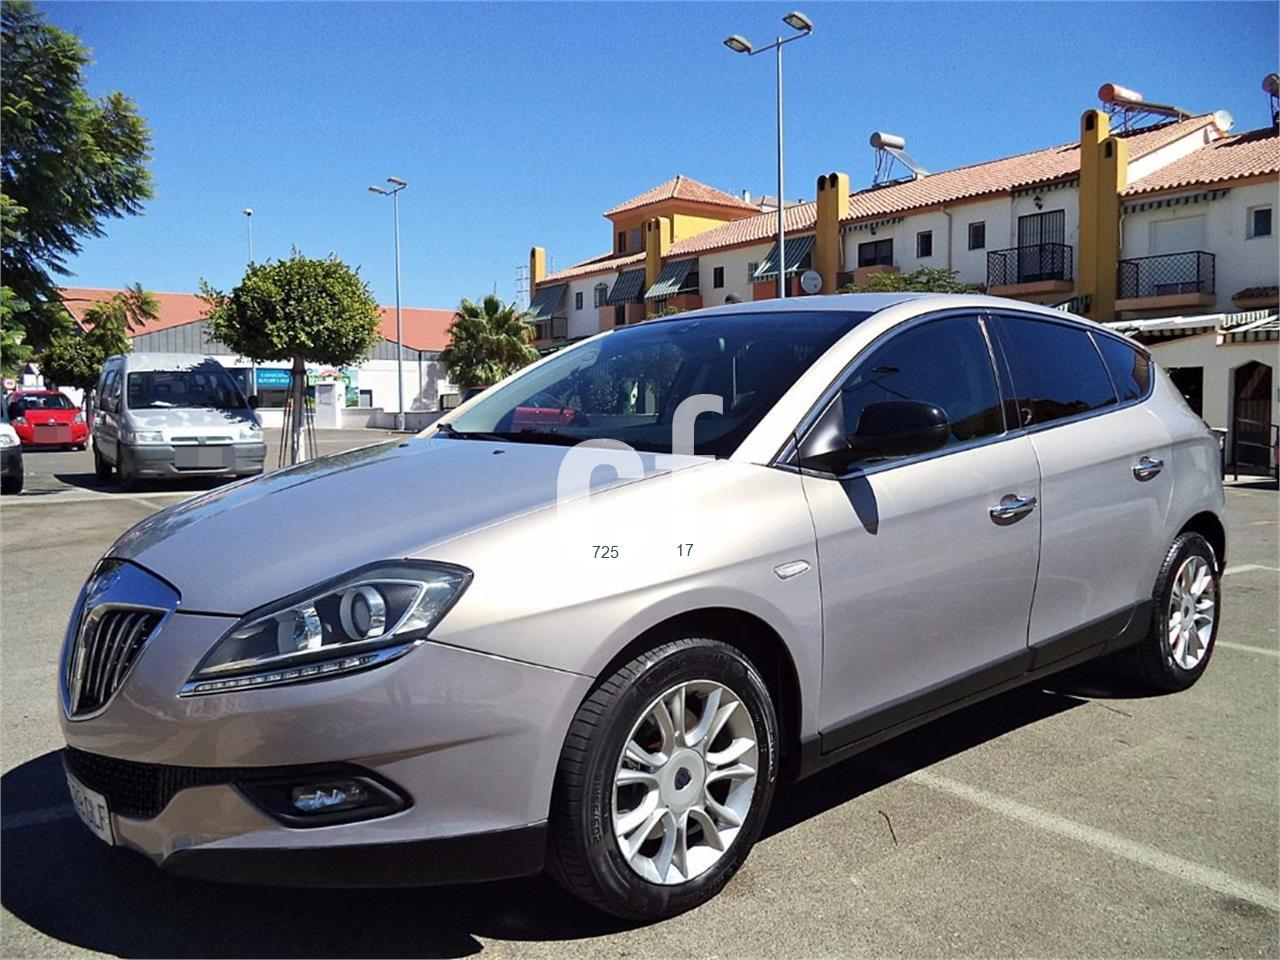 Used Cars For Sale In Malaga Spain